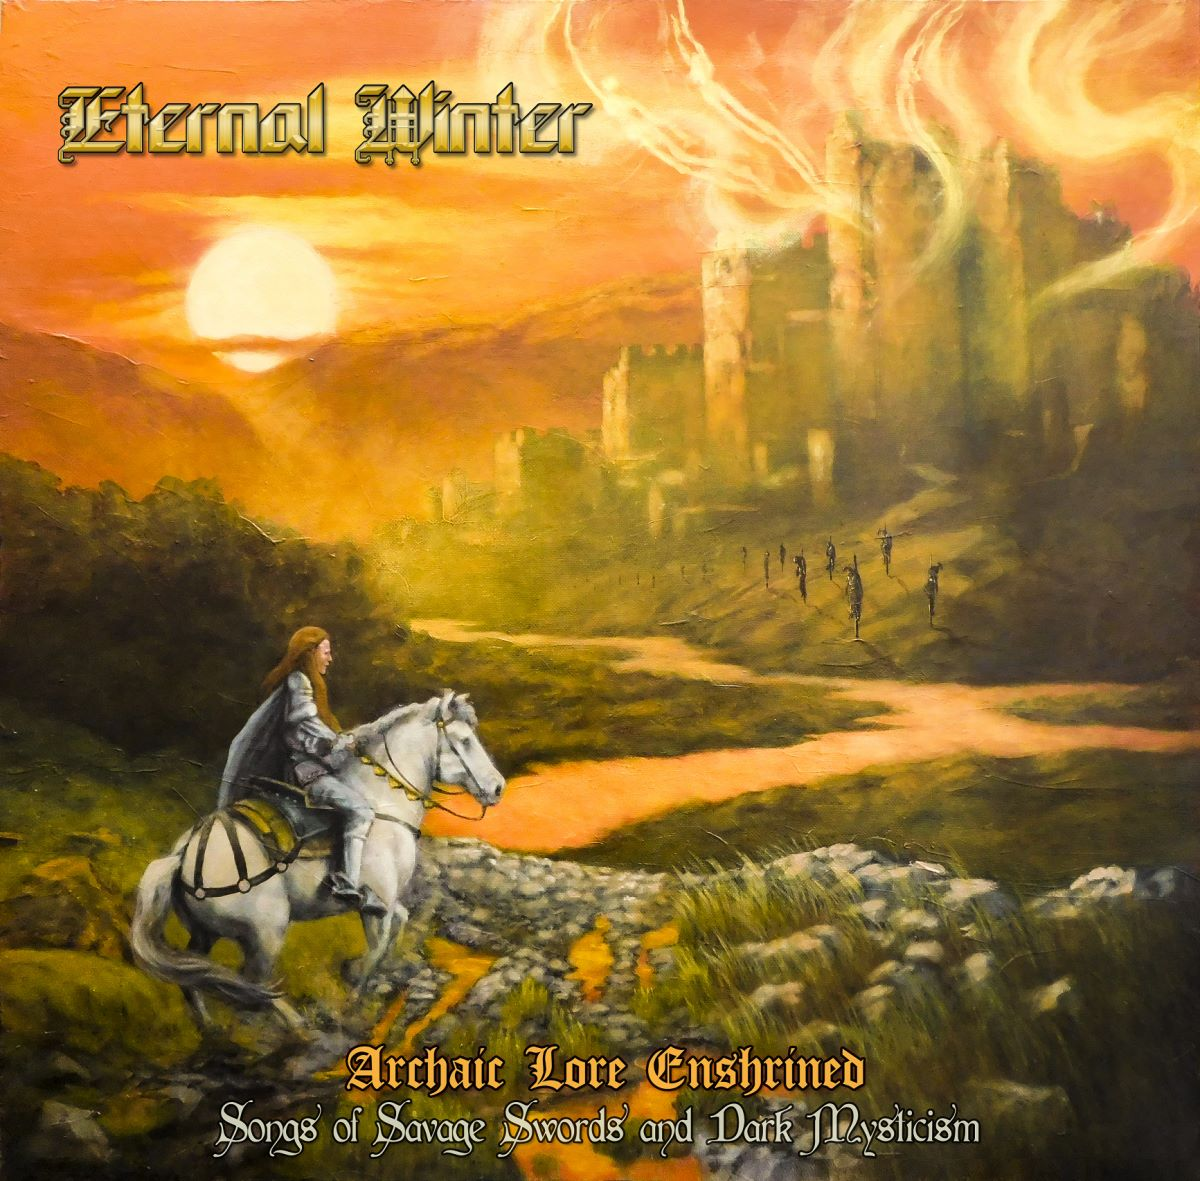 Eternal Winter – Archaic Lore Enshrined: Songs Of Savage Swords and Dark Mysticism - album cover